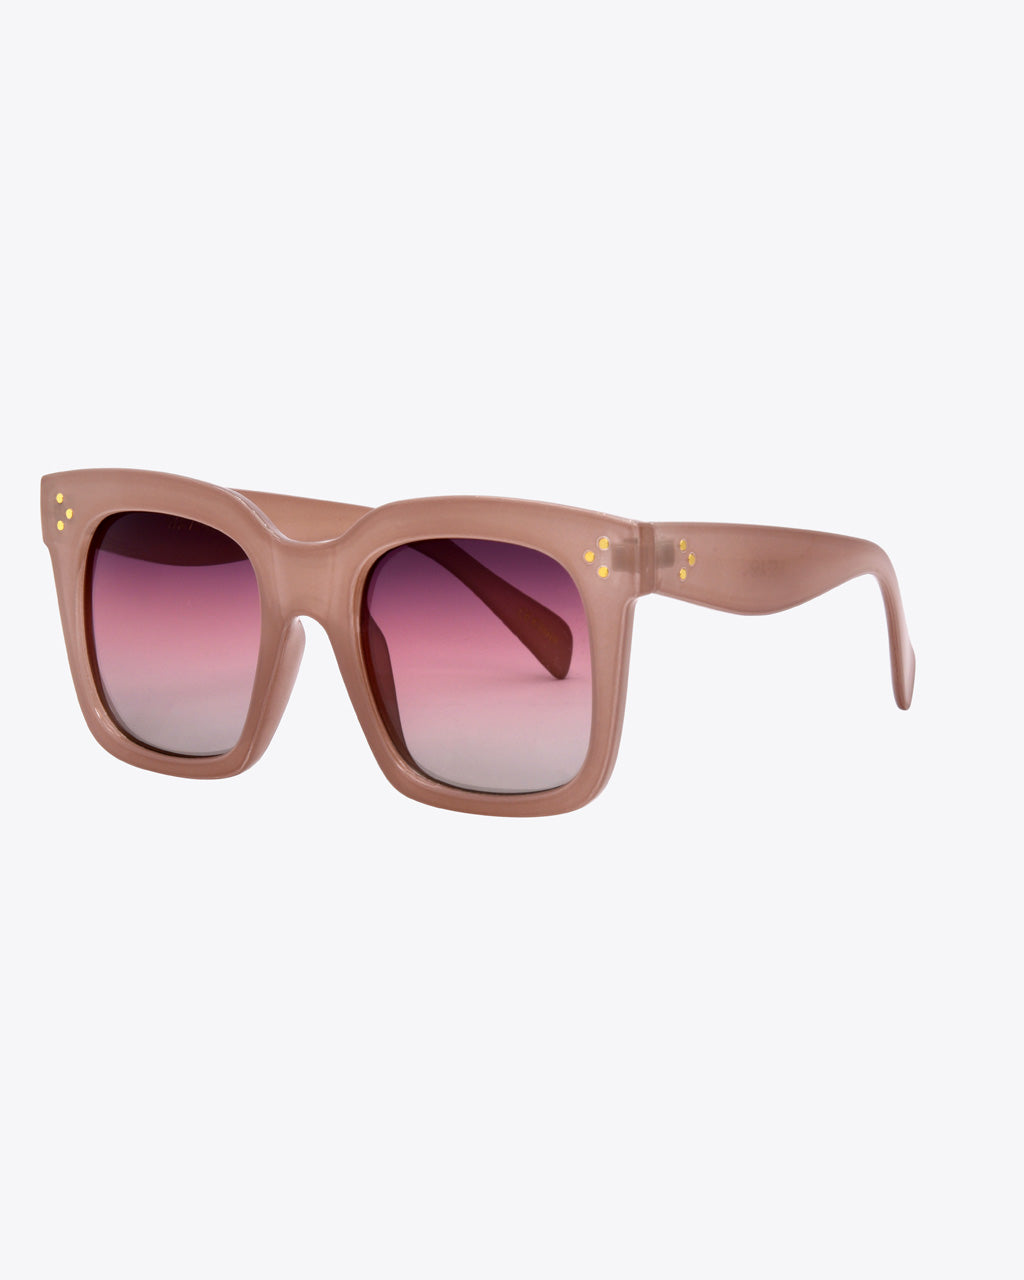 side view of pink thick rimmed sunglasses with gradient pink lenses